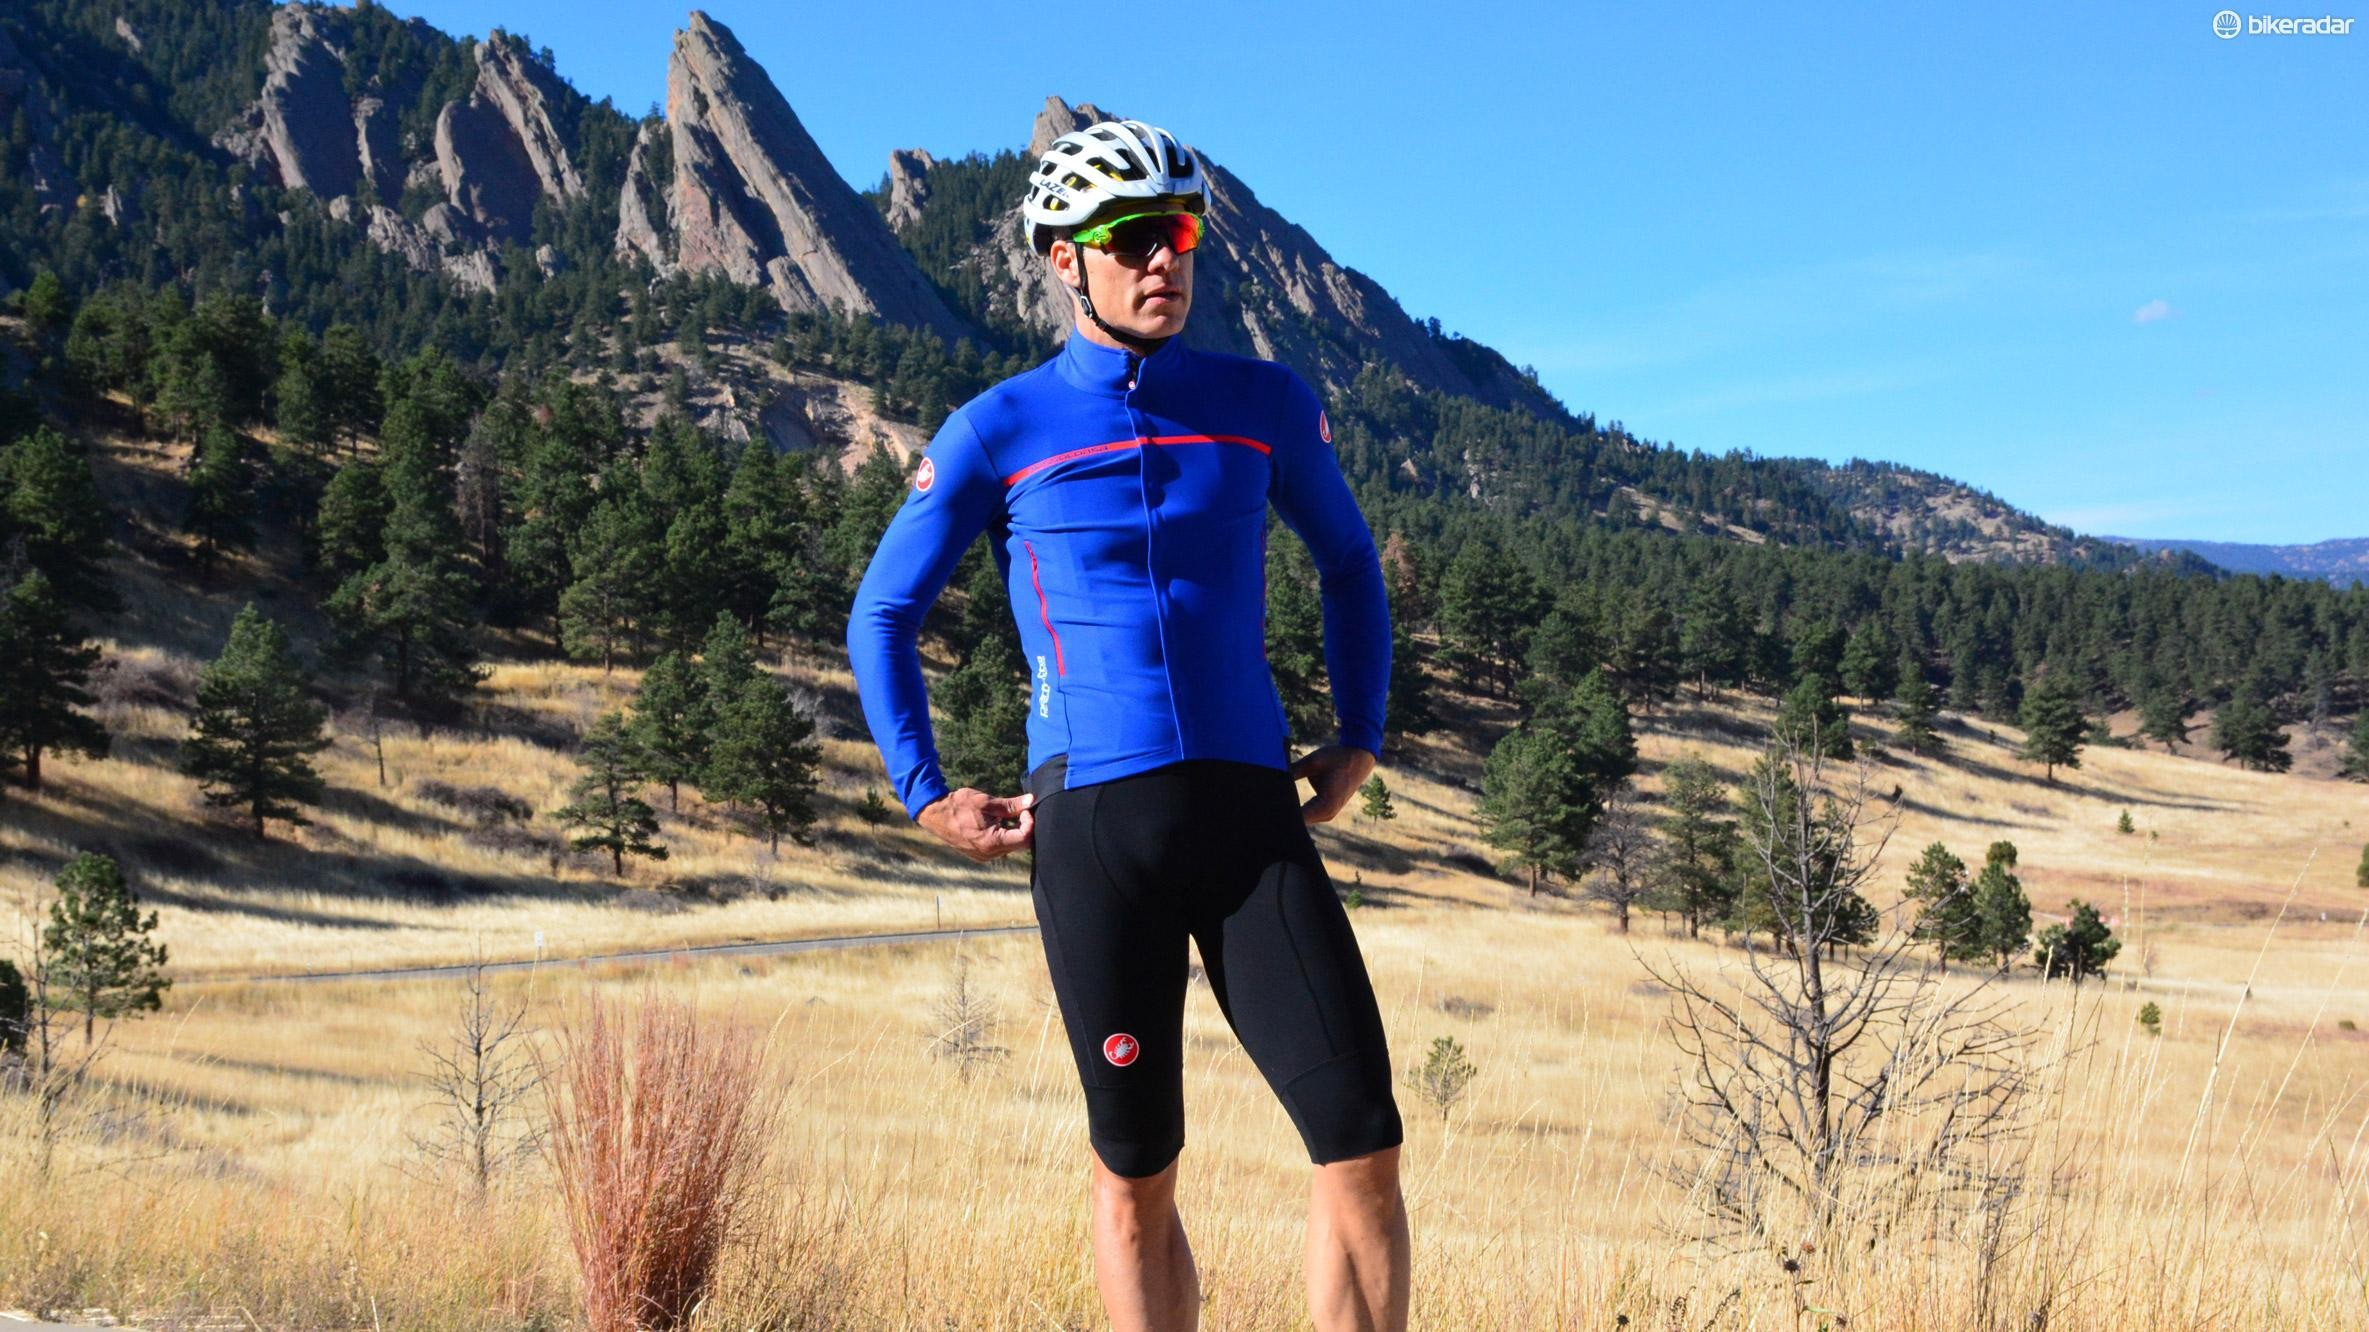 Castelli's Omloop Thermal Bib Shorts have a similar concept but in a single piece